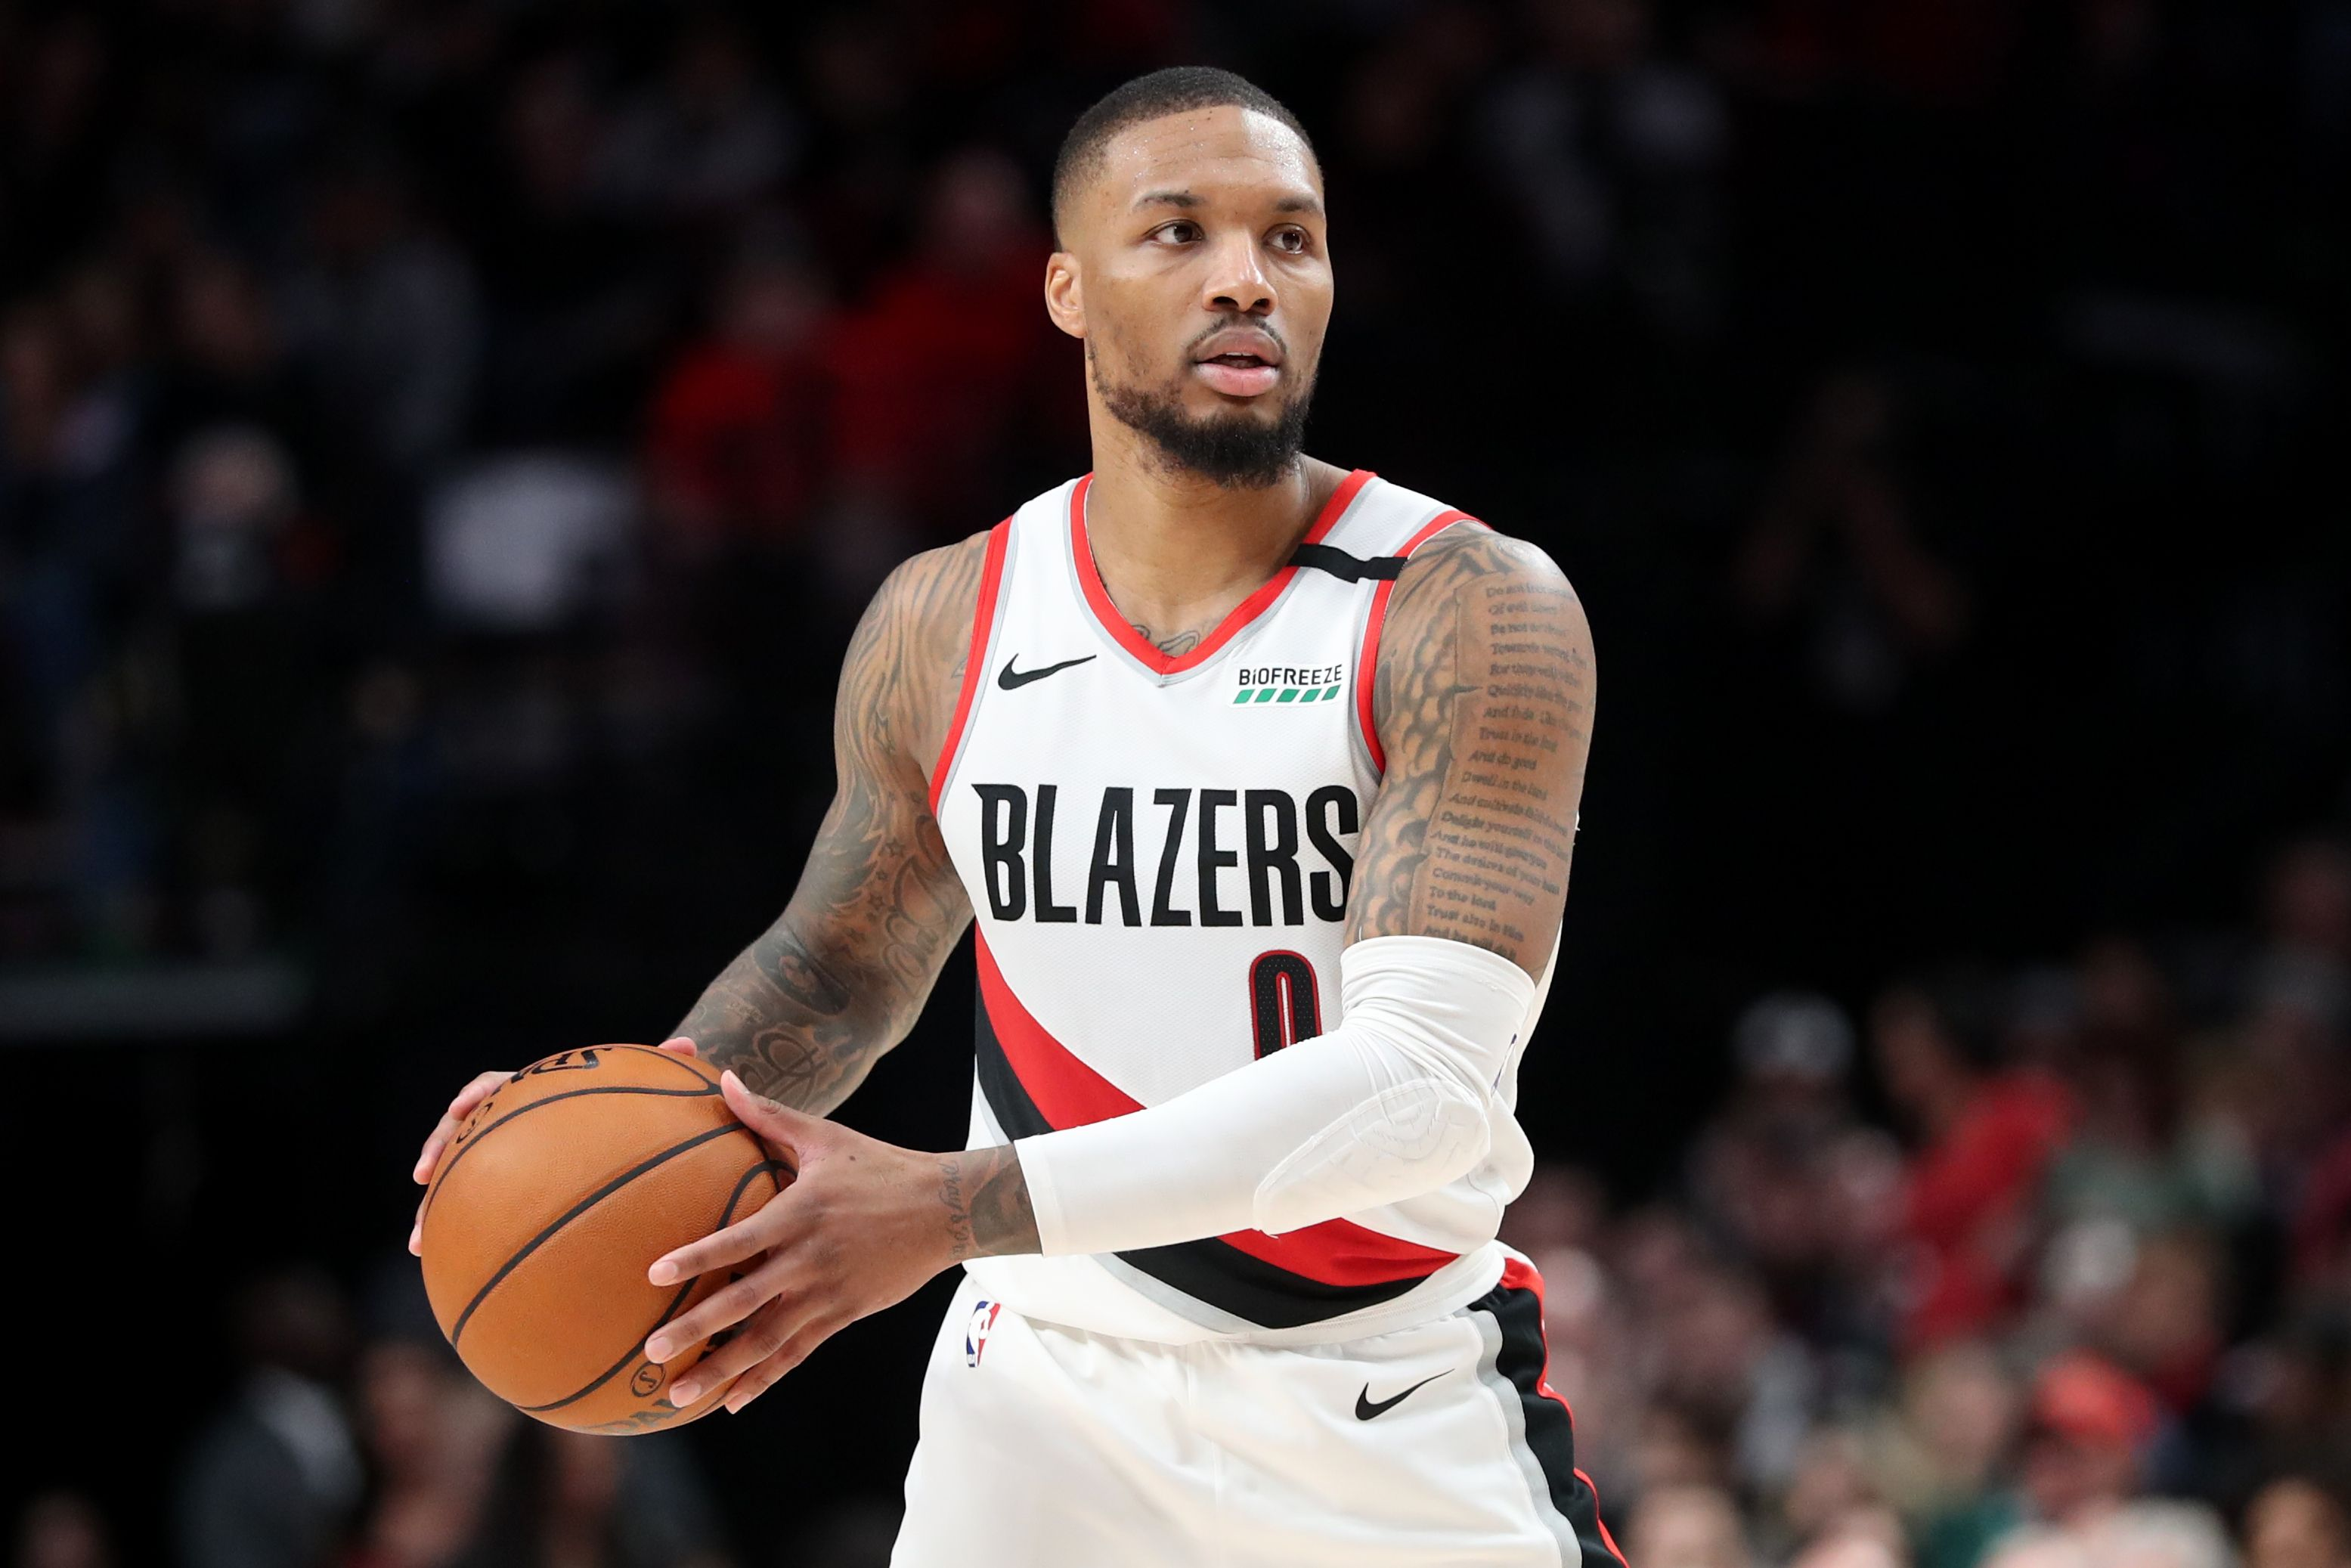 Damian Lillard #0 of the Portland Trail Blazers during a game against the San Antonio Spurs at Moda Center on February 06, 2020 in Portland, Oregon | Photo: Getty Images